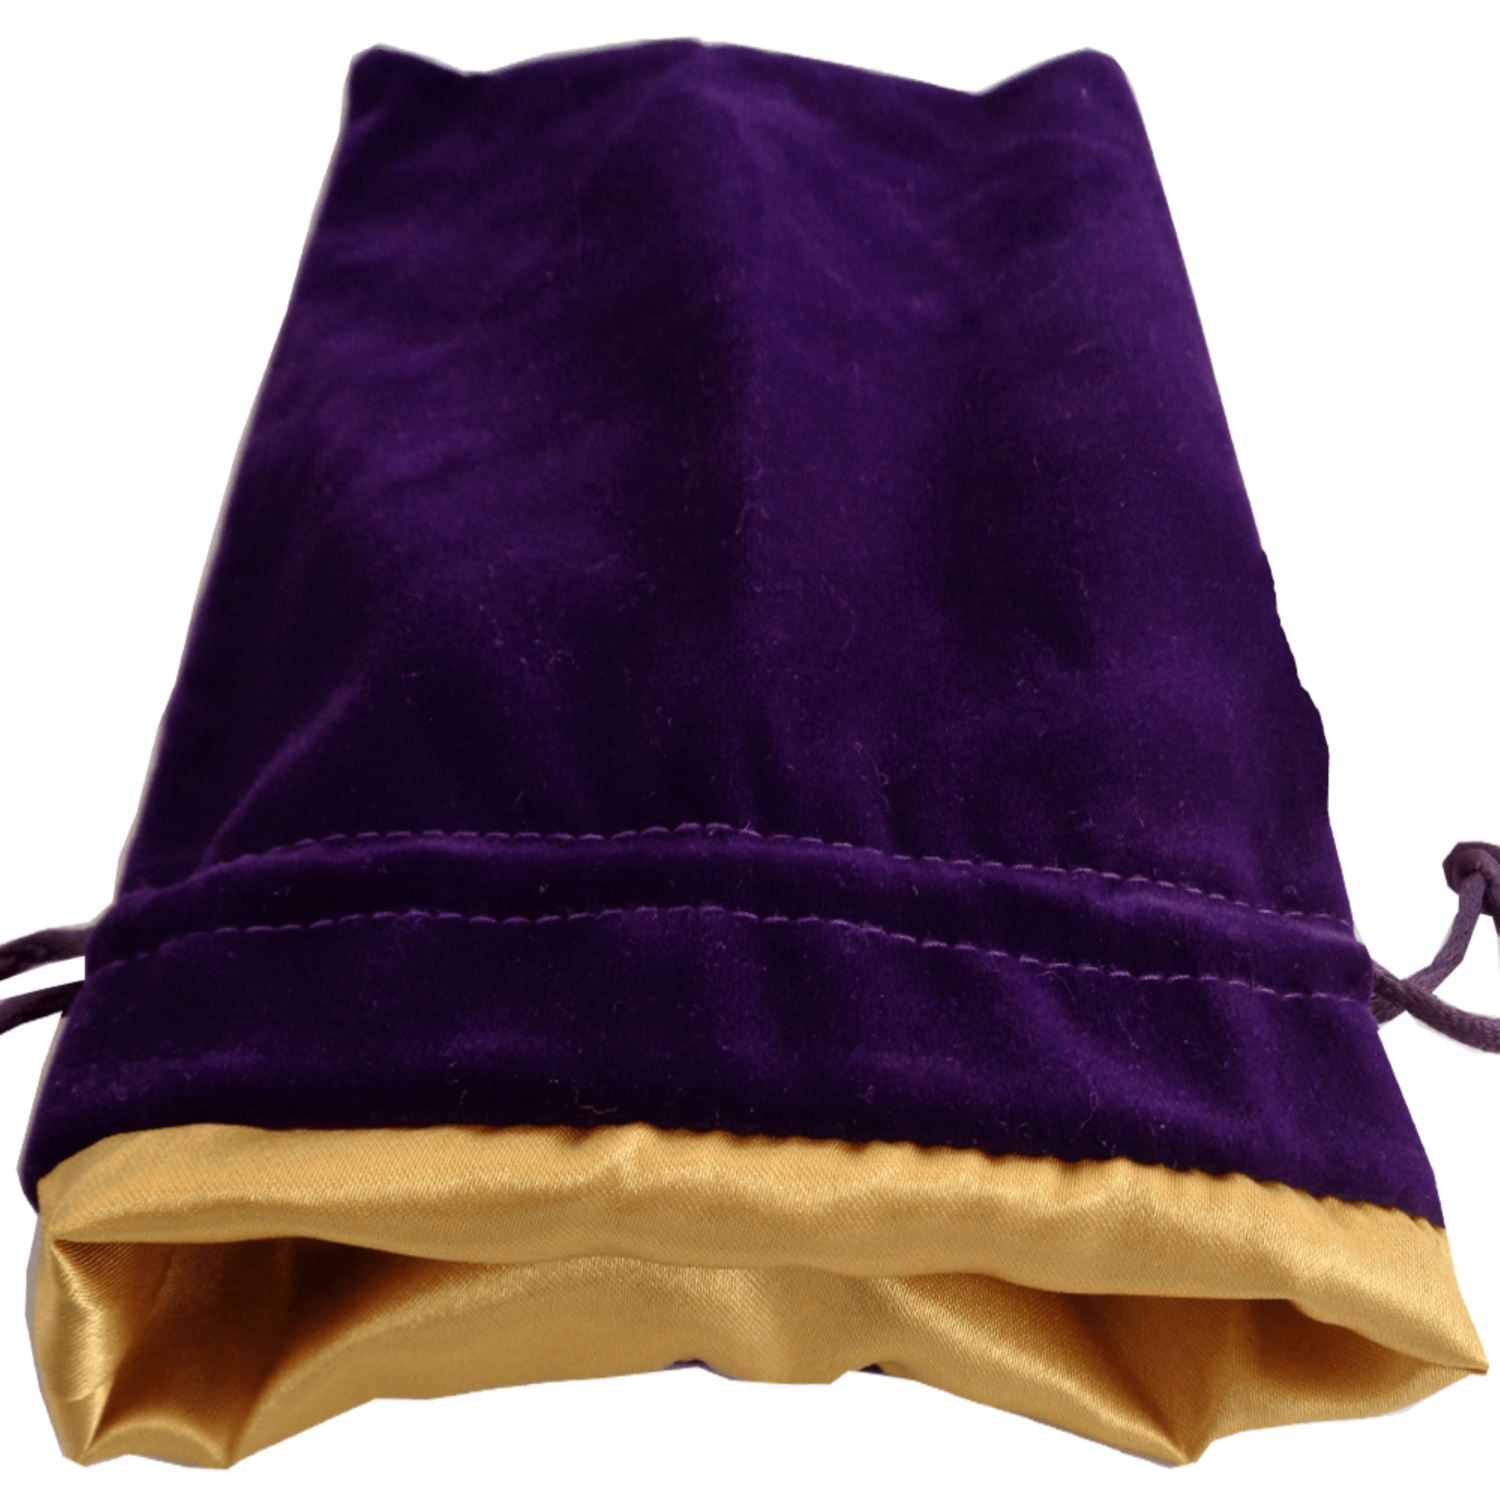 Velvet Dice Bag With Satin Liner 6″x8″ Purple with Gold - Drawstring Pouch Jewelry Tabletop RPG Gaming